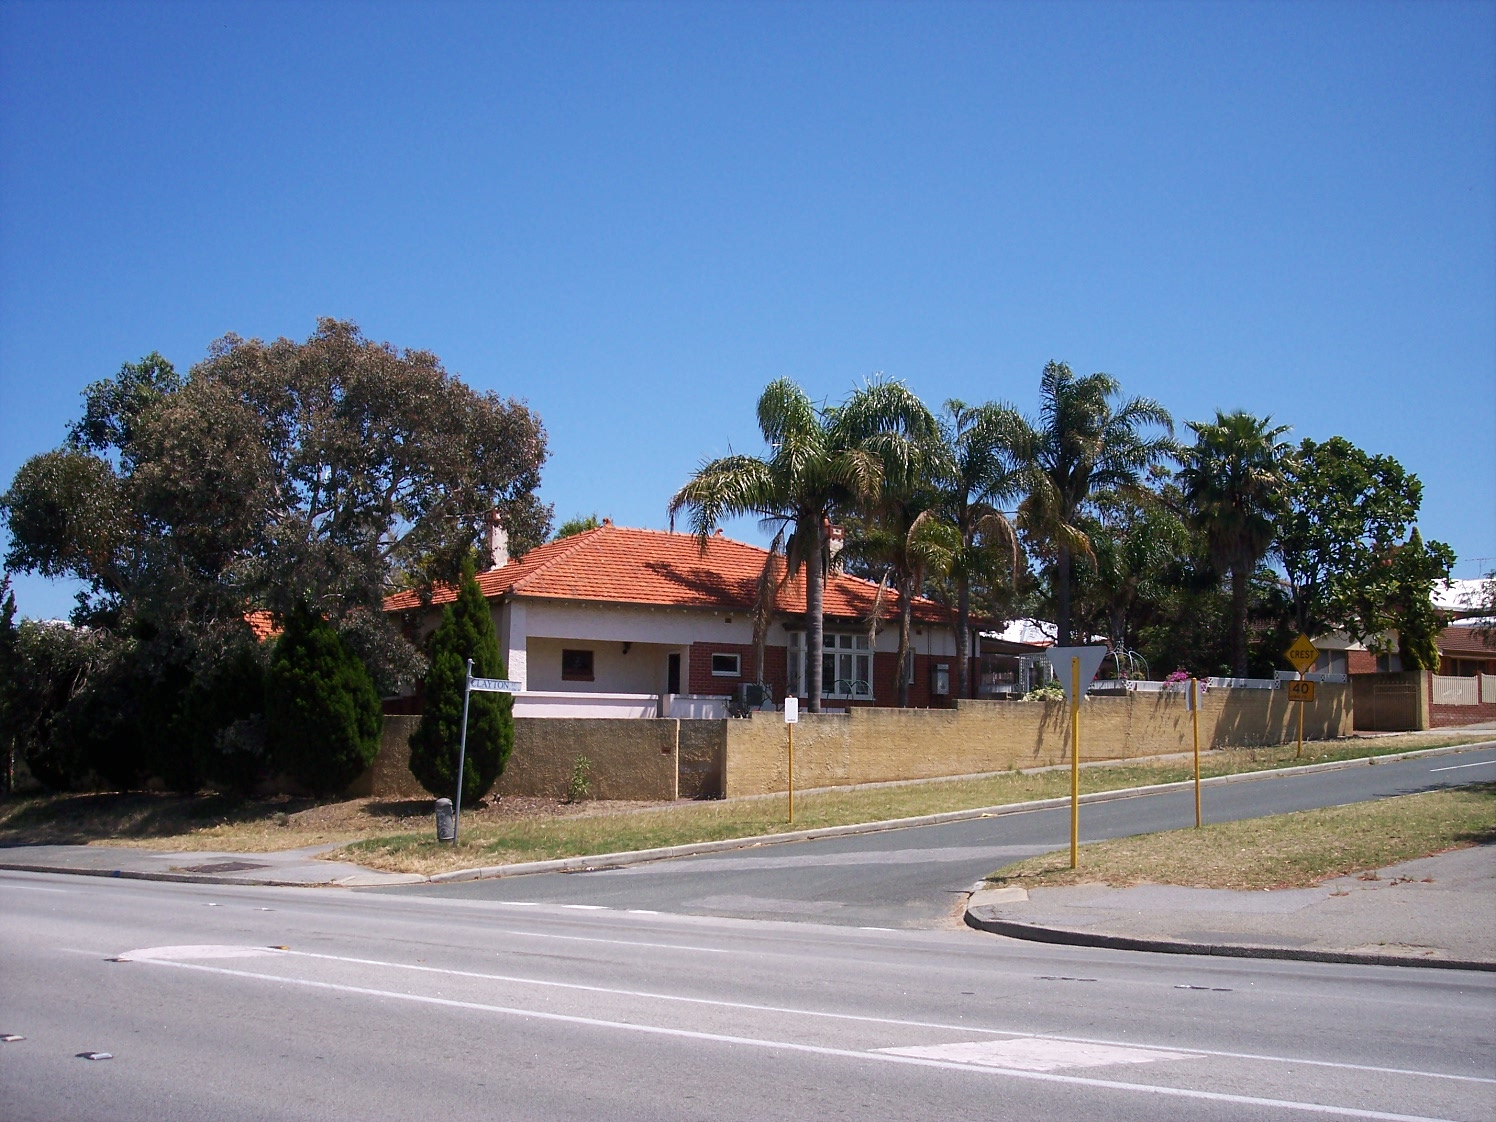 31-10-06 View NW 244 Canning Highway.jpg